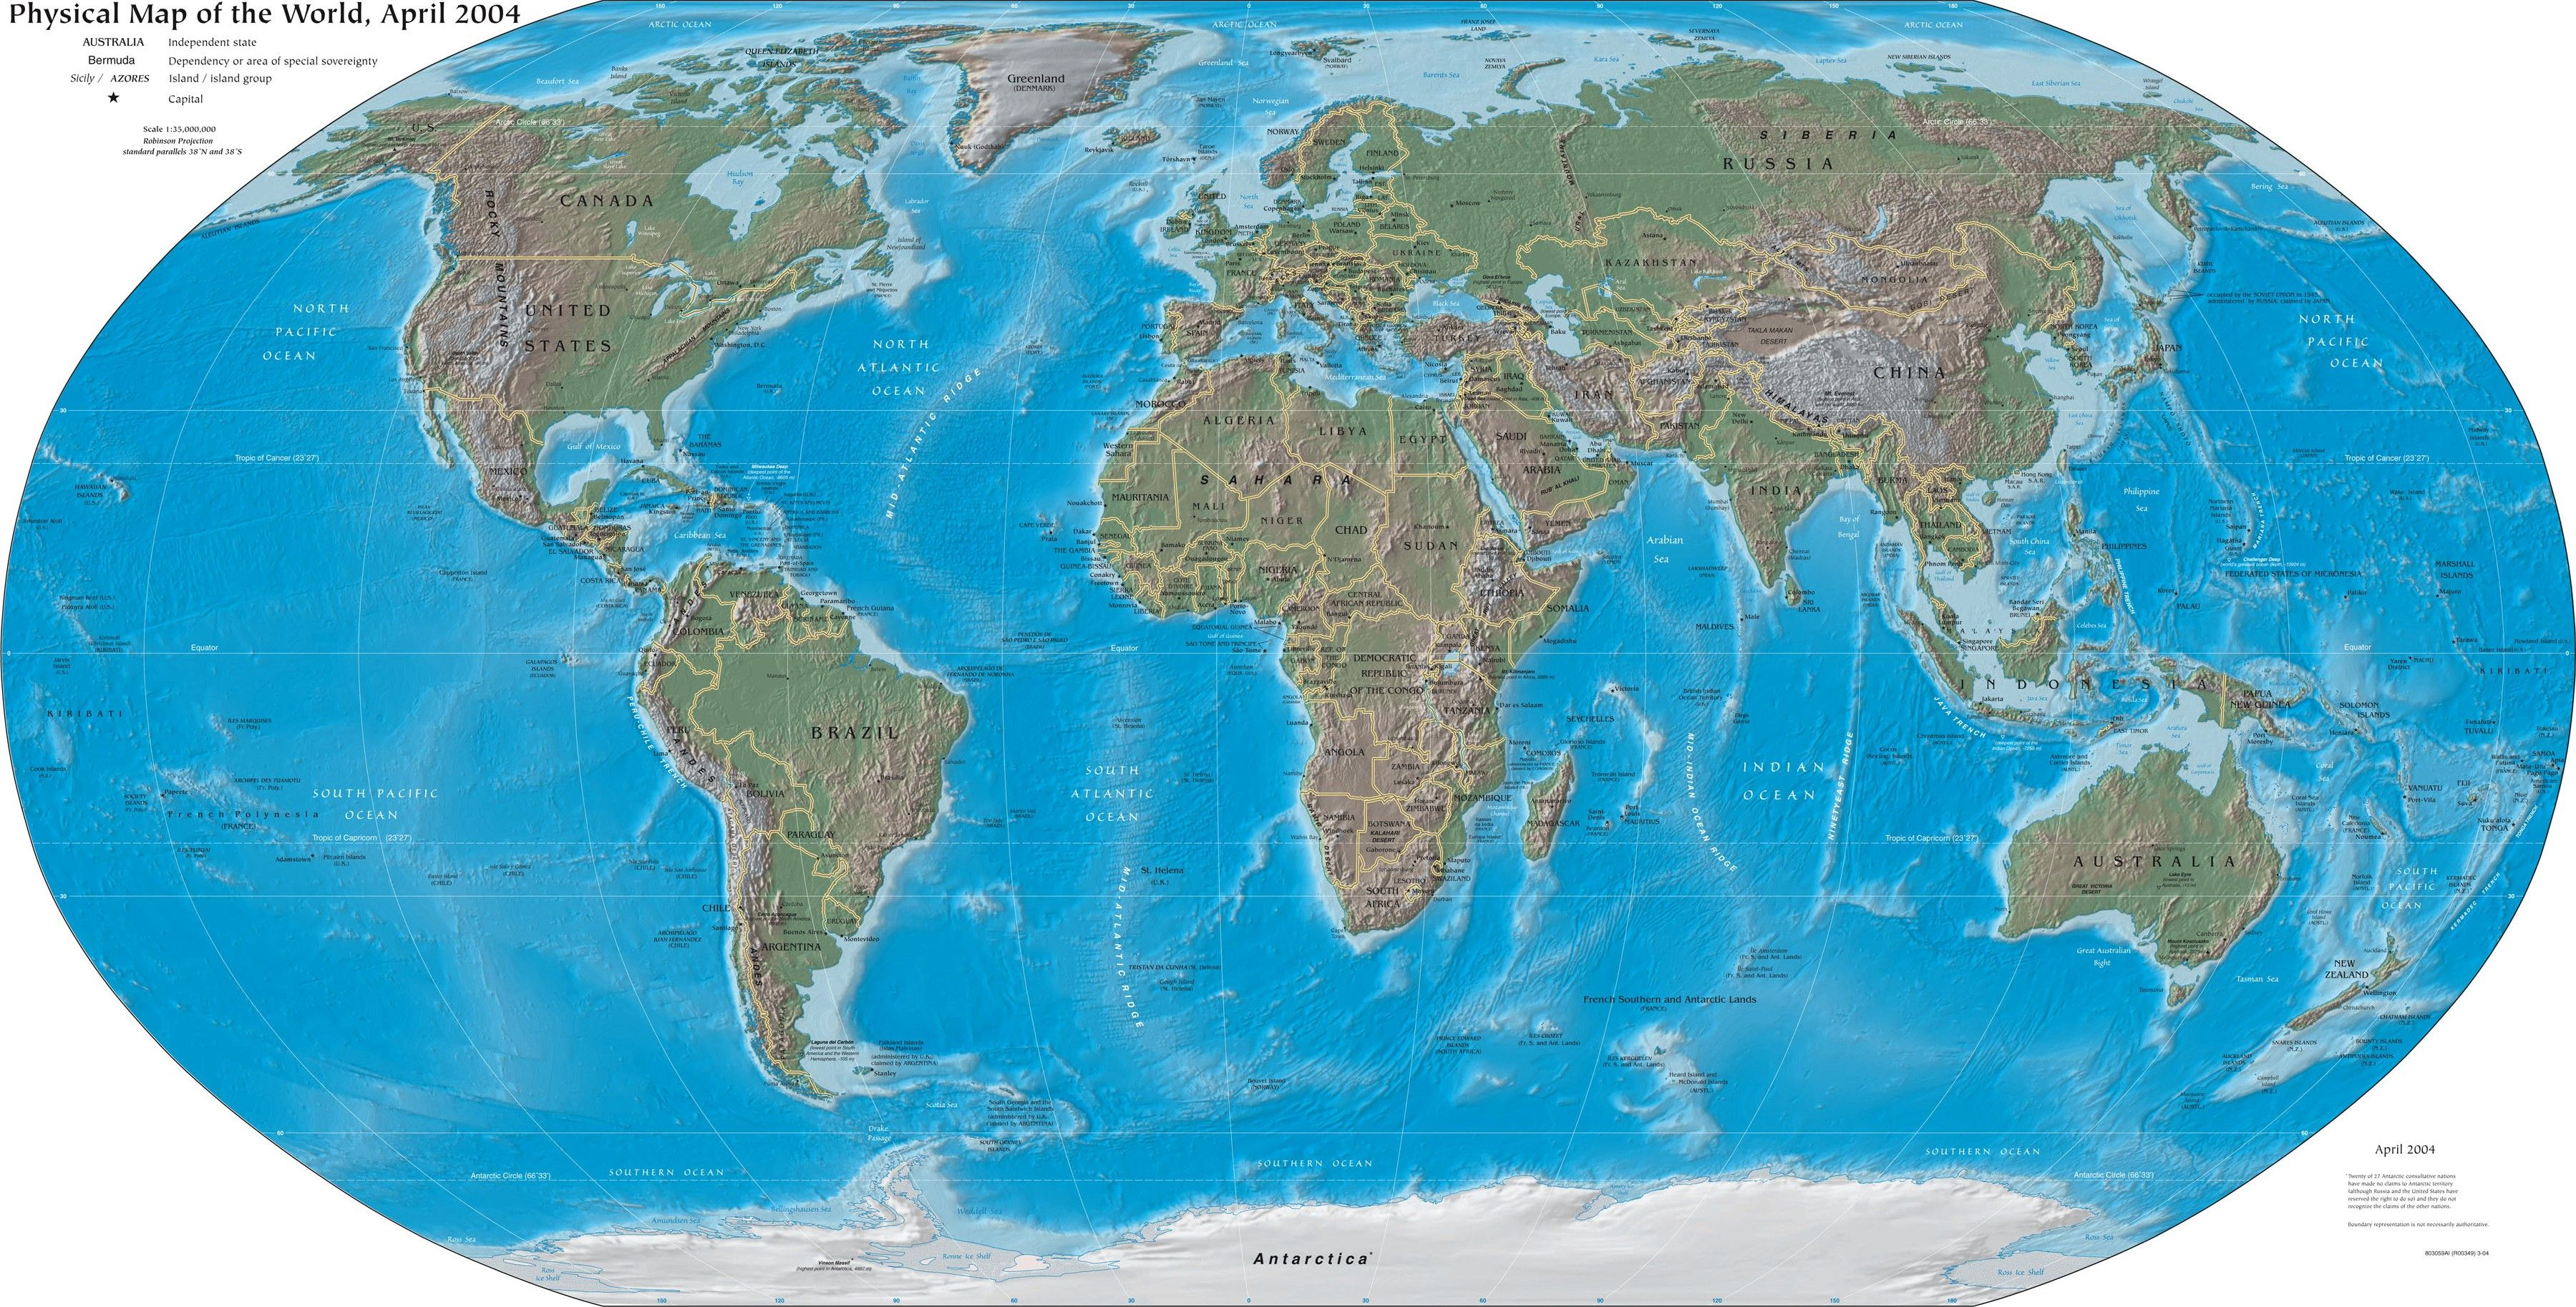 Printable world map political and geophysical cool for school printable world map political and geophysical gumiabroncs Images